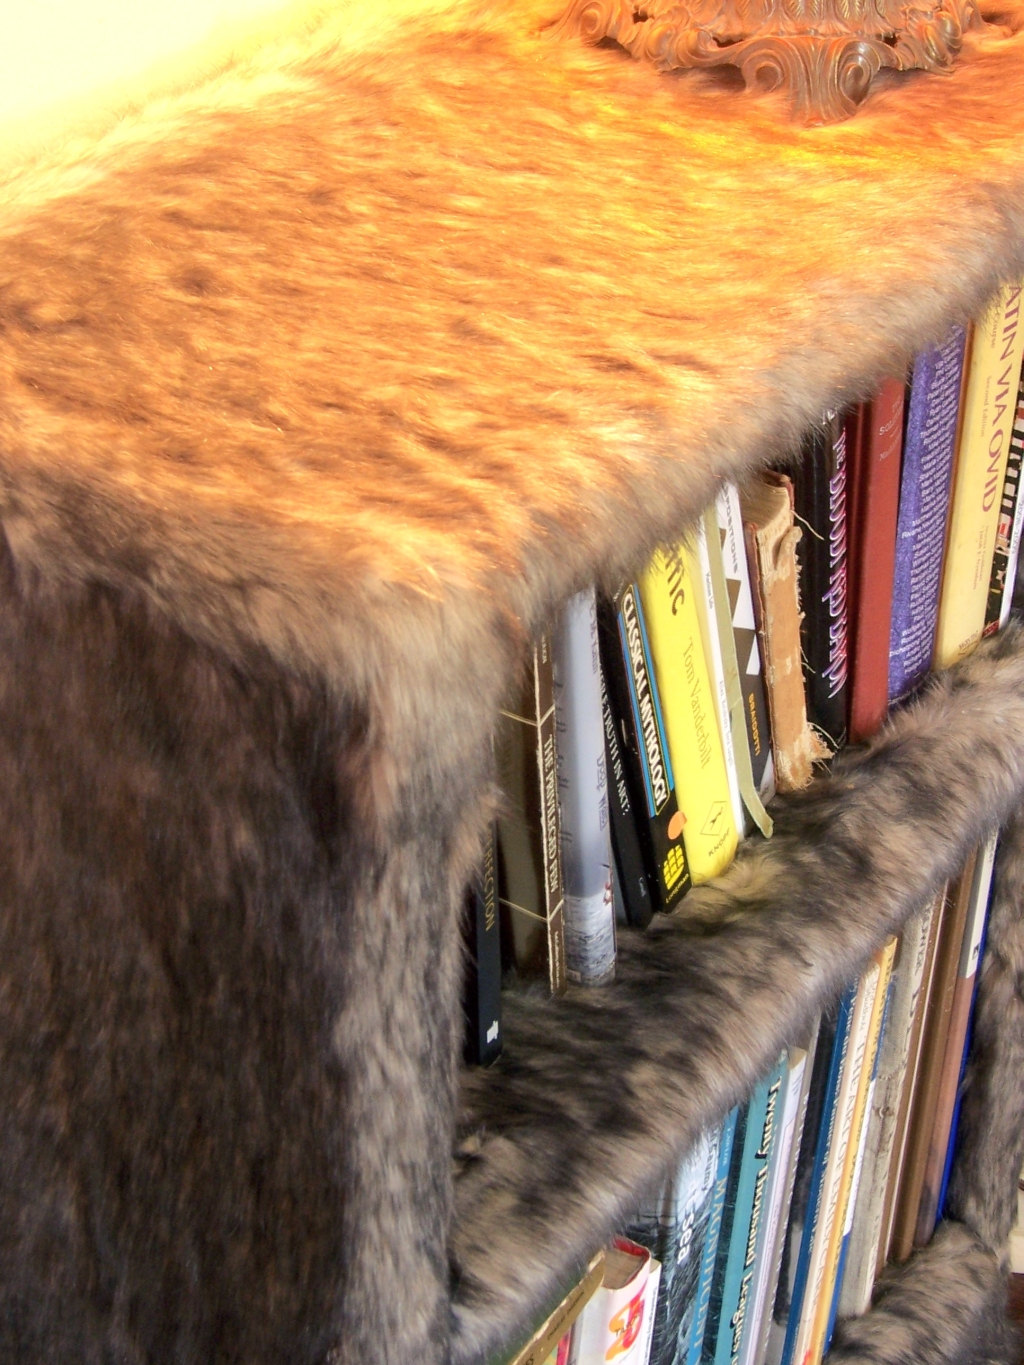 faux fur bookshelf by modern art design 225x300 1 furry faux fur 1024x1365